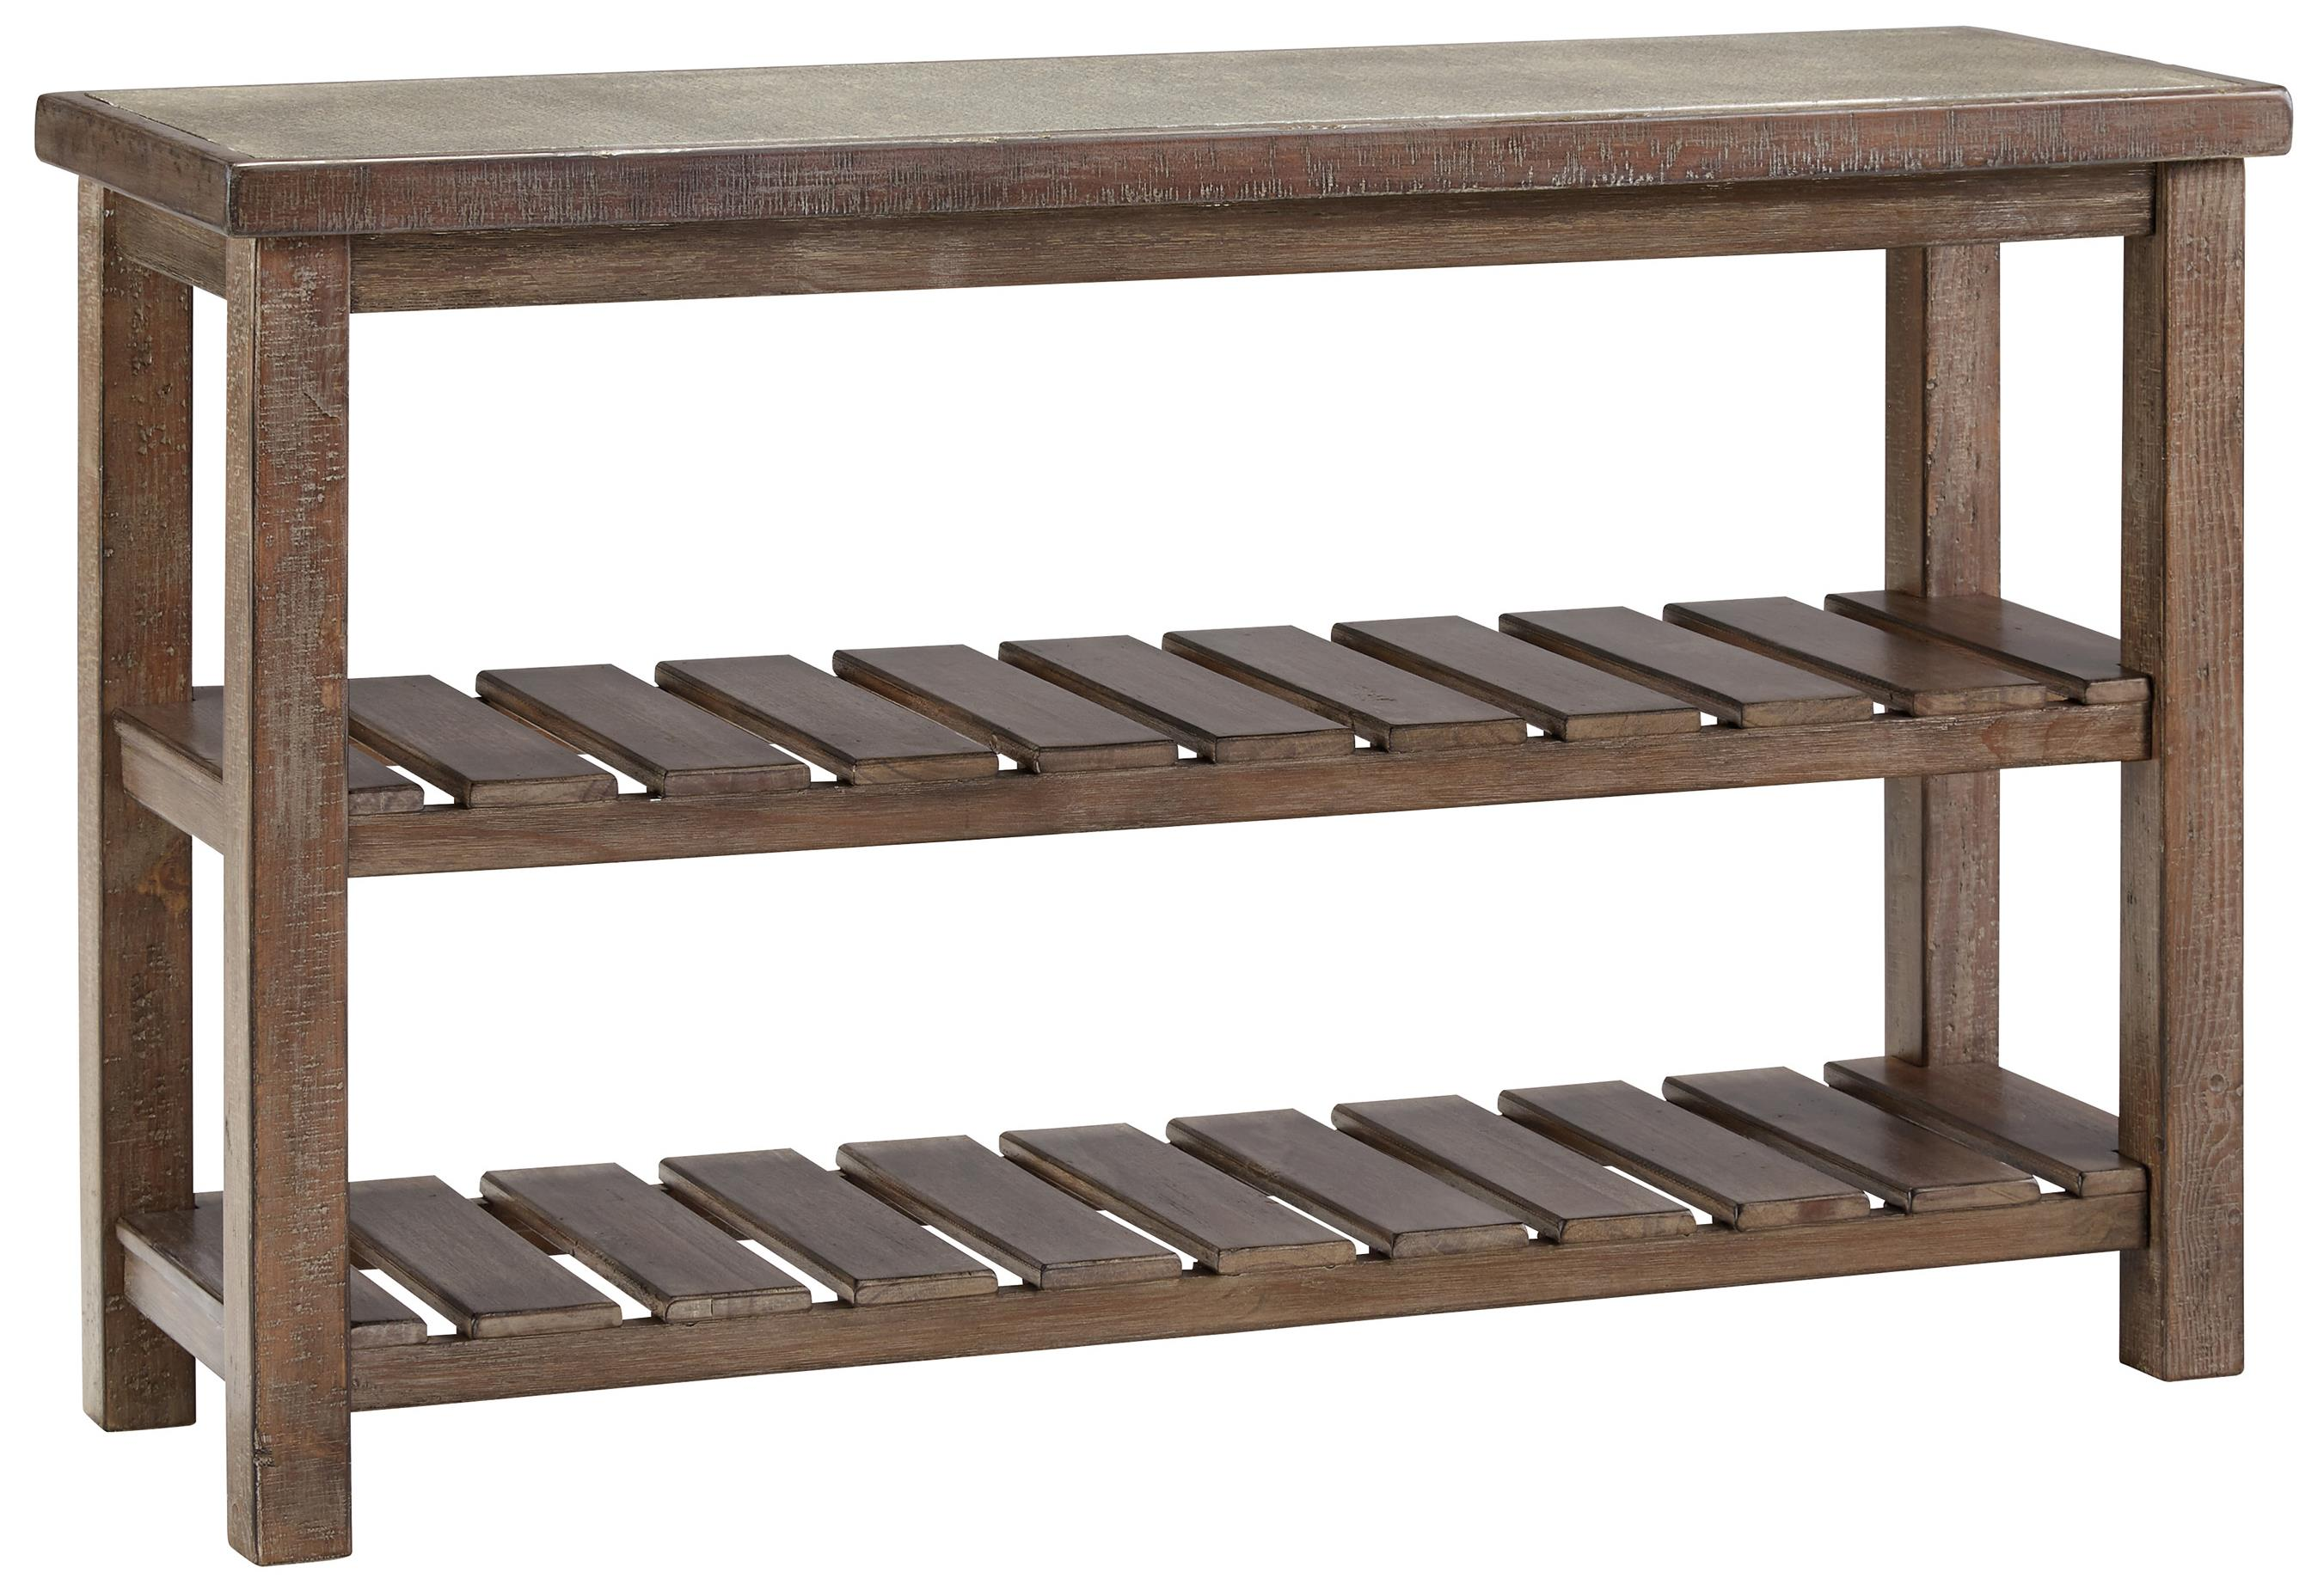 Signature Design by Ashley Vennilux Sofa Table - Item Number: T500-104